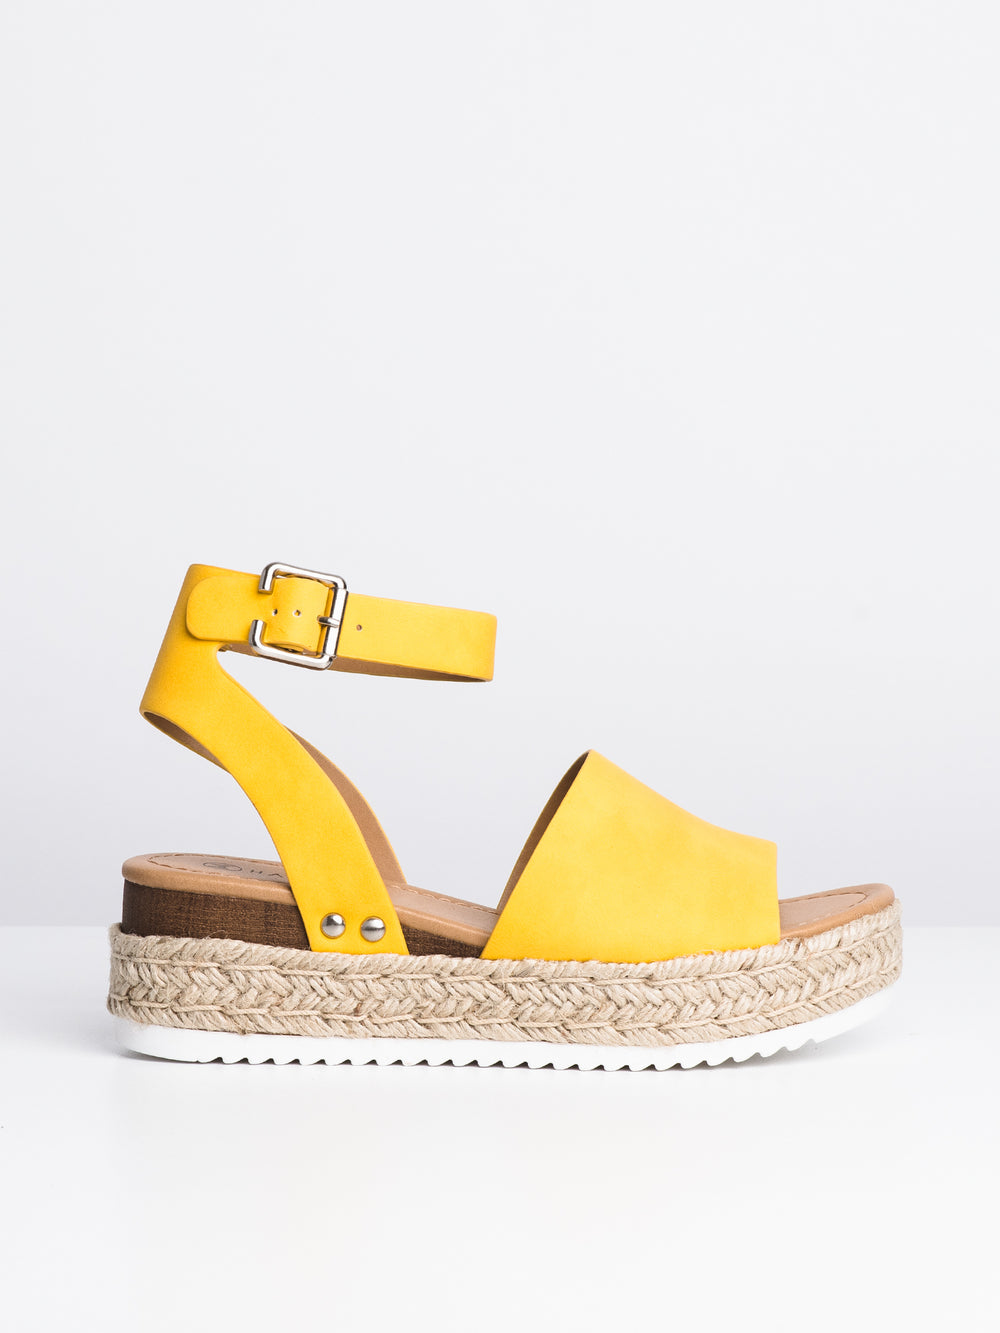 WOMENS TOPIC - YELLOW-D2